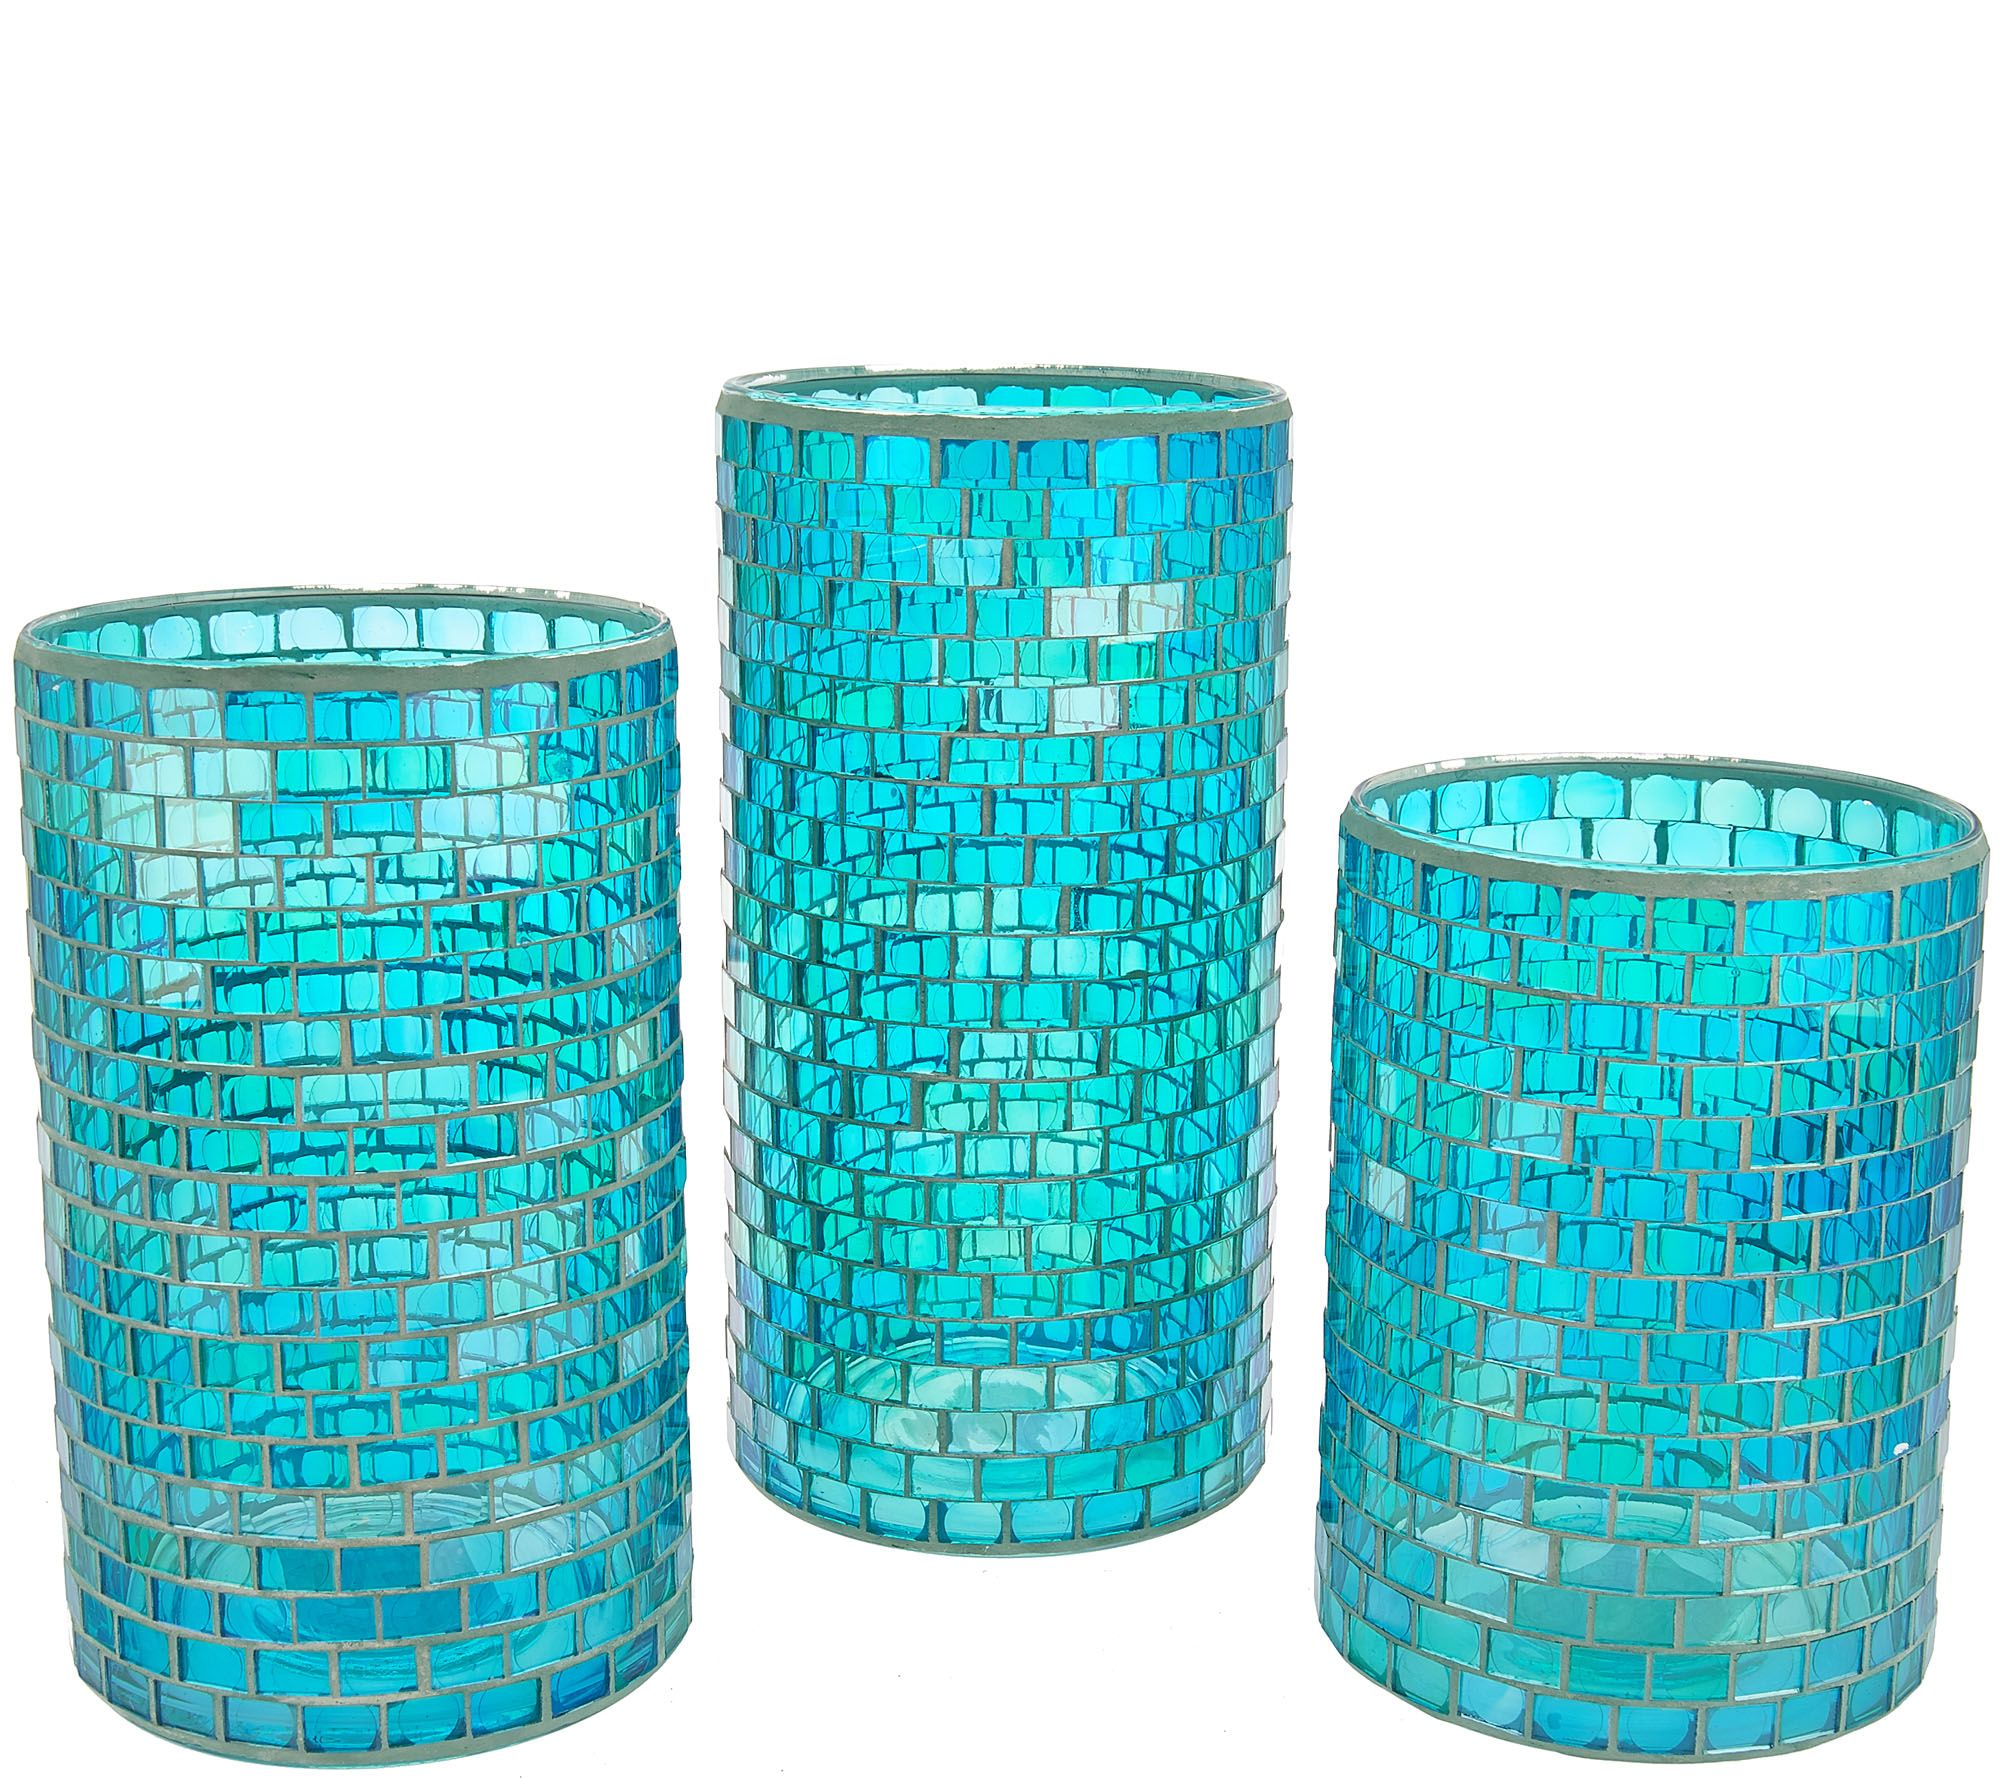 Decorative Candle Holders Candle Holders Decorative Candle Holders Qvccom